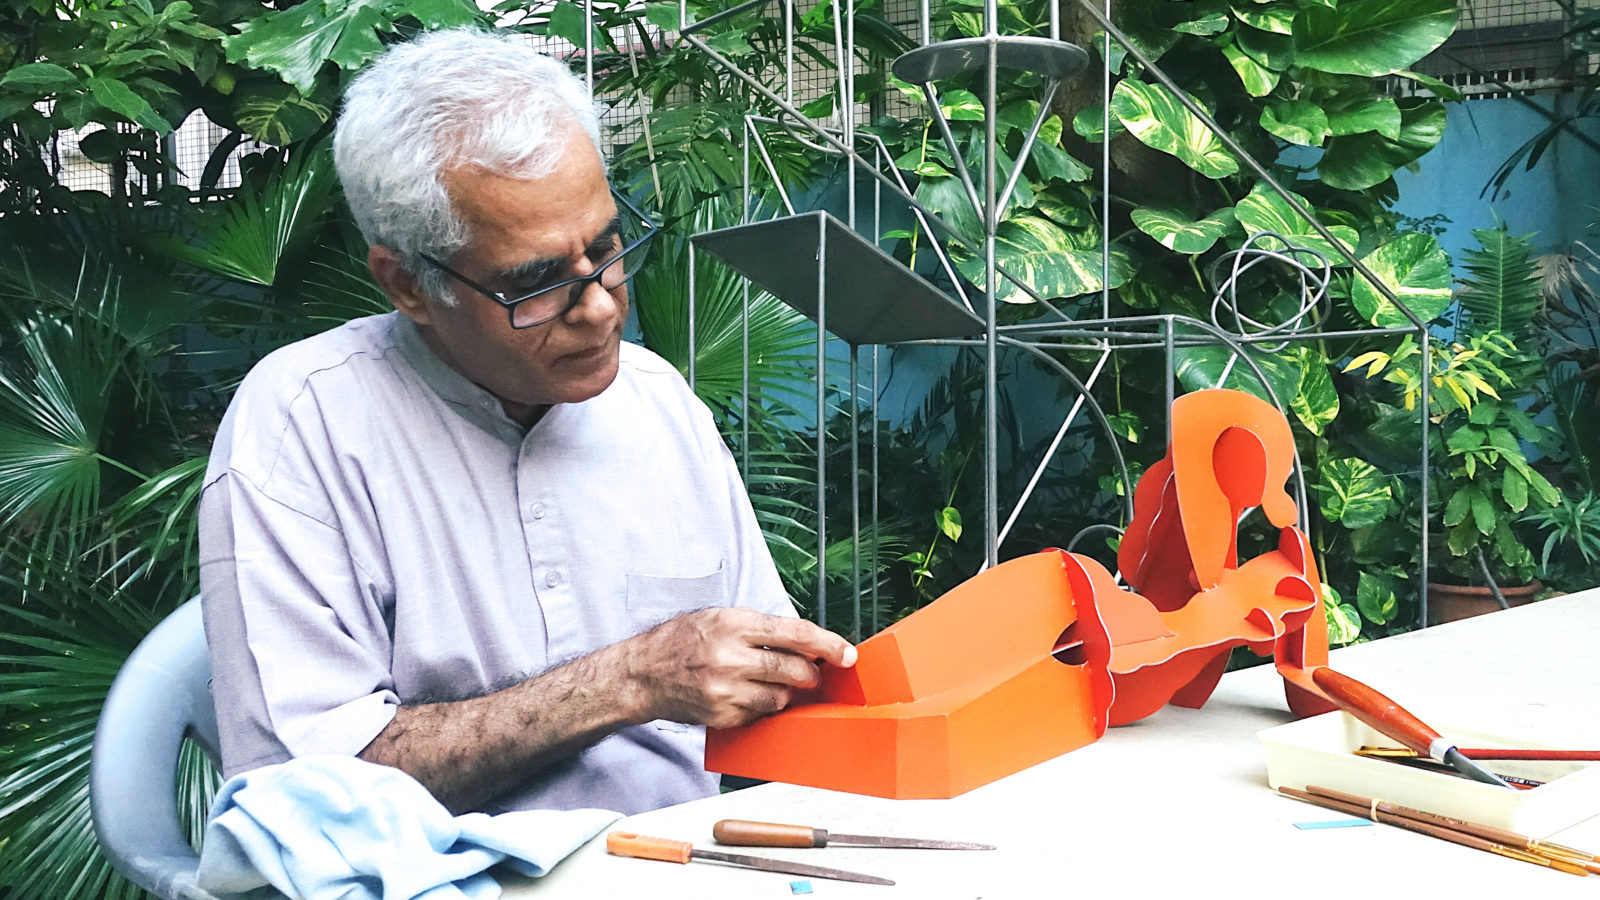 Dhruva Mistry at work in his garden, 2019. Courtesy of the artist and Akara Art